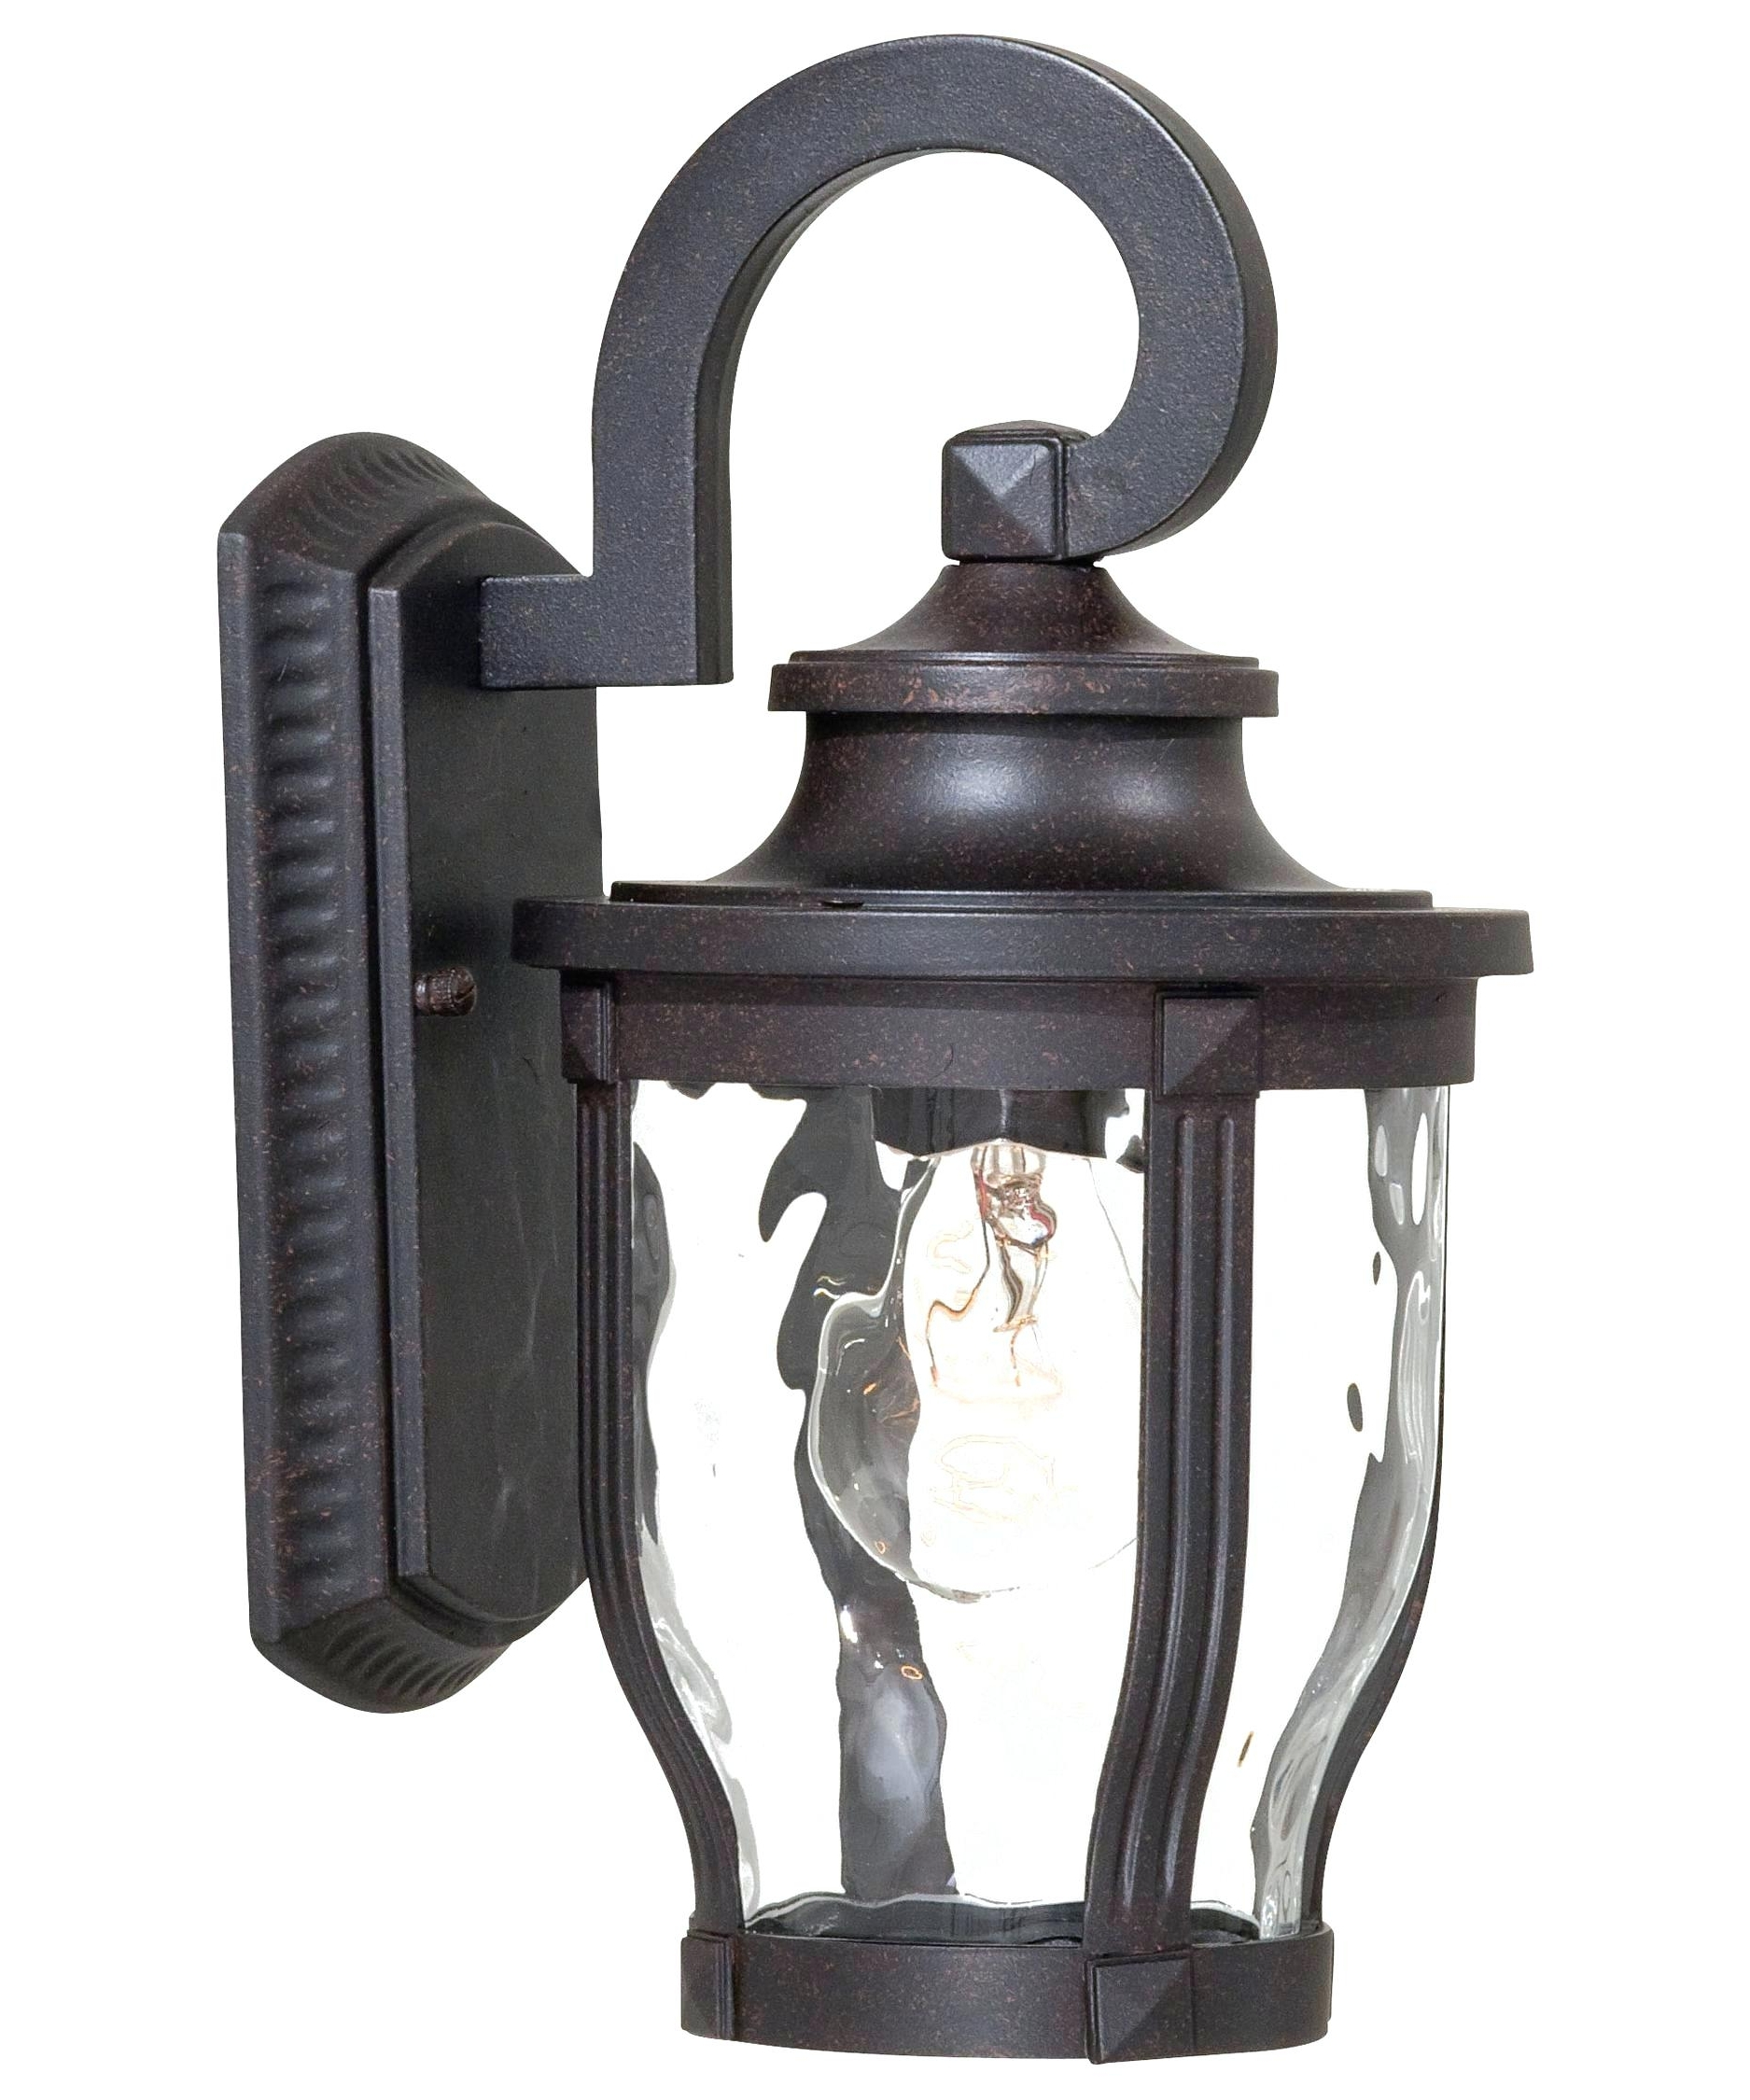 Latest Outdoor Wall Light Fixtures – Everythingbeauty Pertaining To Outdoor Wall Lighting Fixtures At Amazon (View 6 of 20)